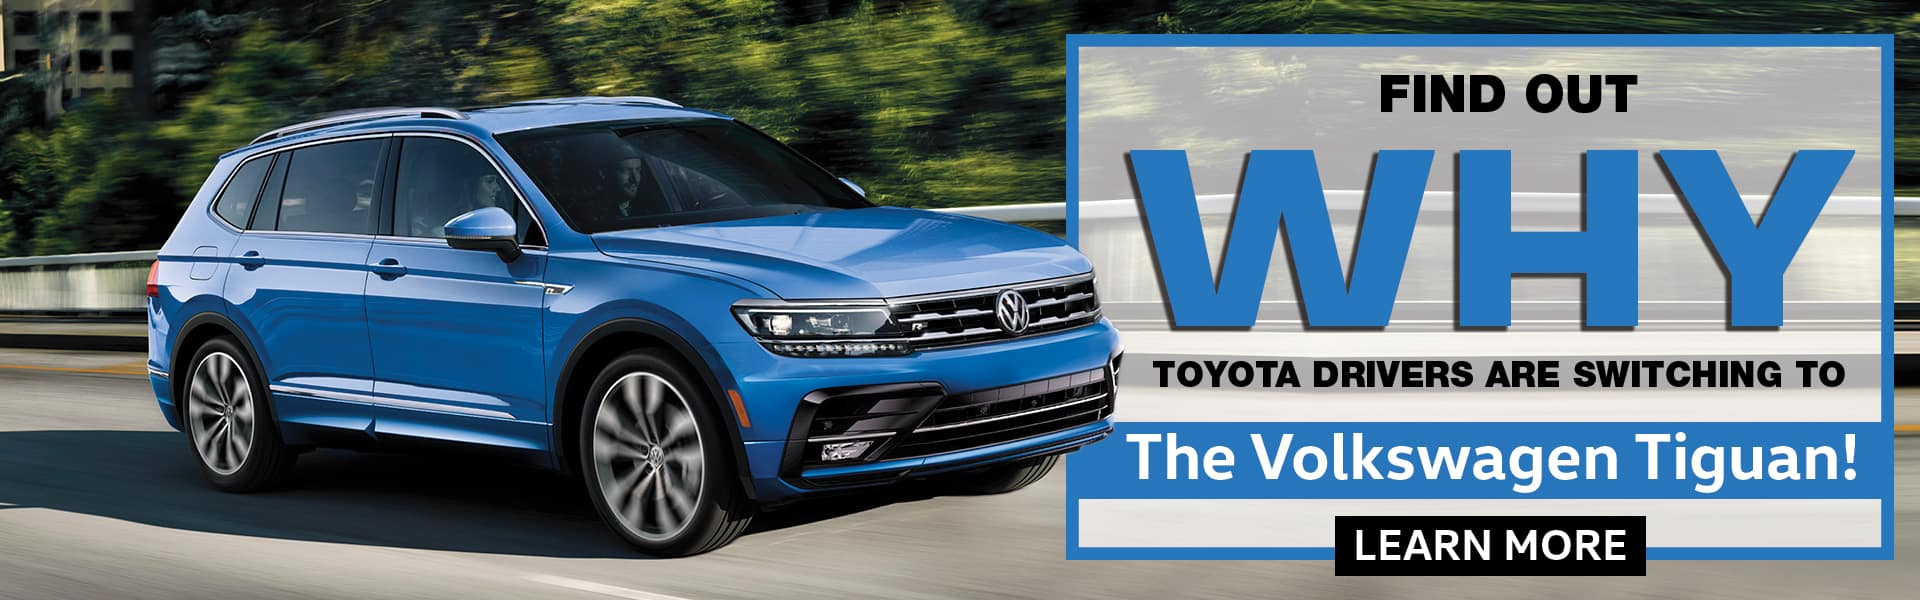 Find Out Why Toyota Drivers Are Switching To The Volkswagen Tiguan